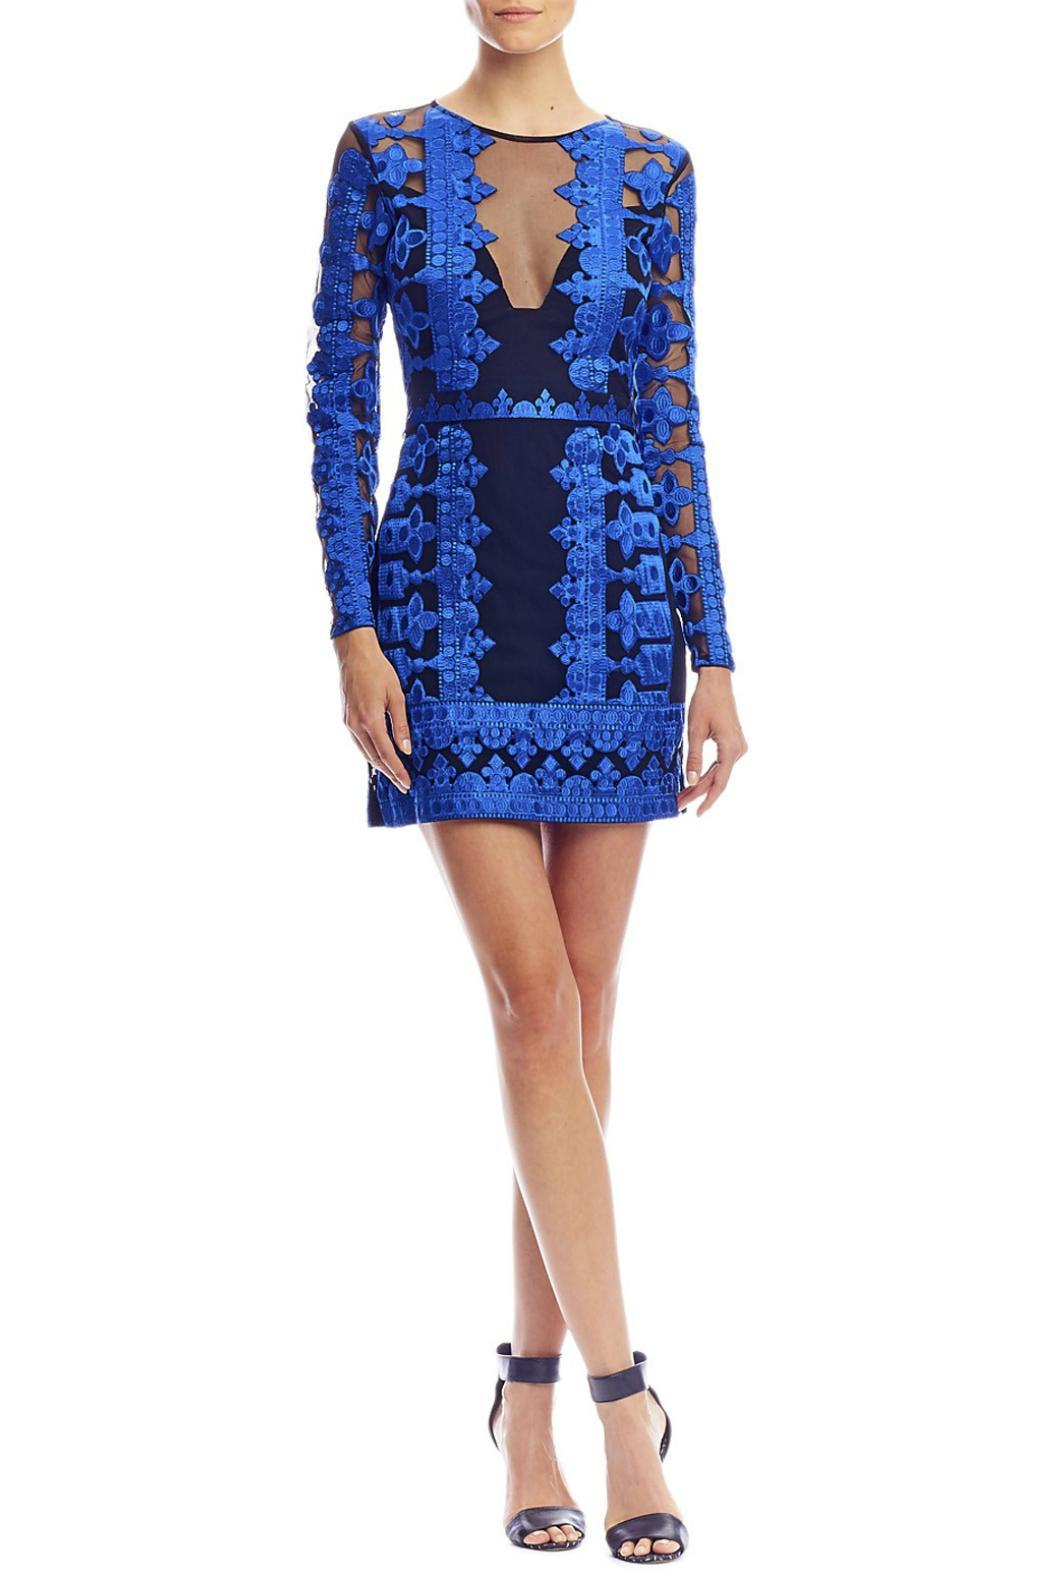 Artelier Nicole Miller Embroidered Illusion Dress Front Cropped Image